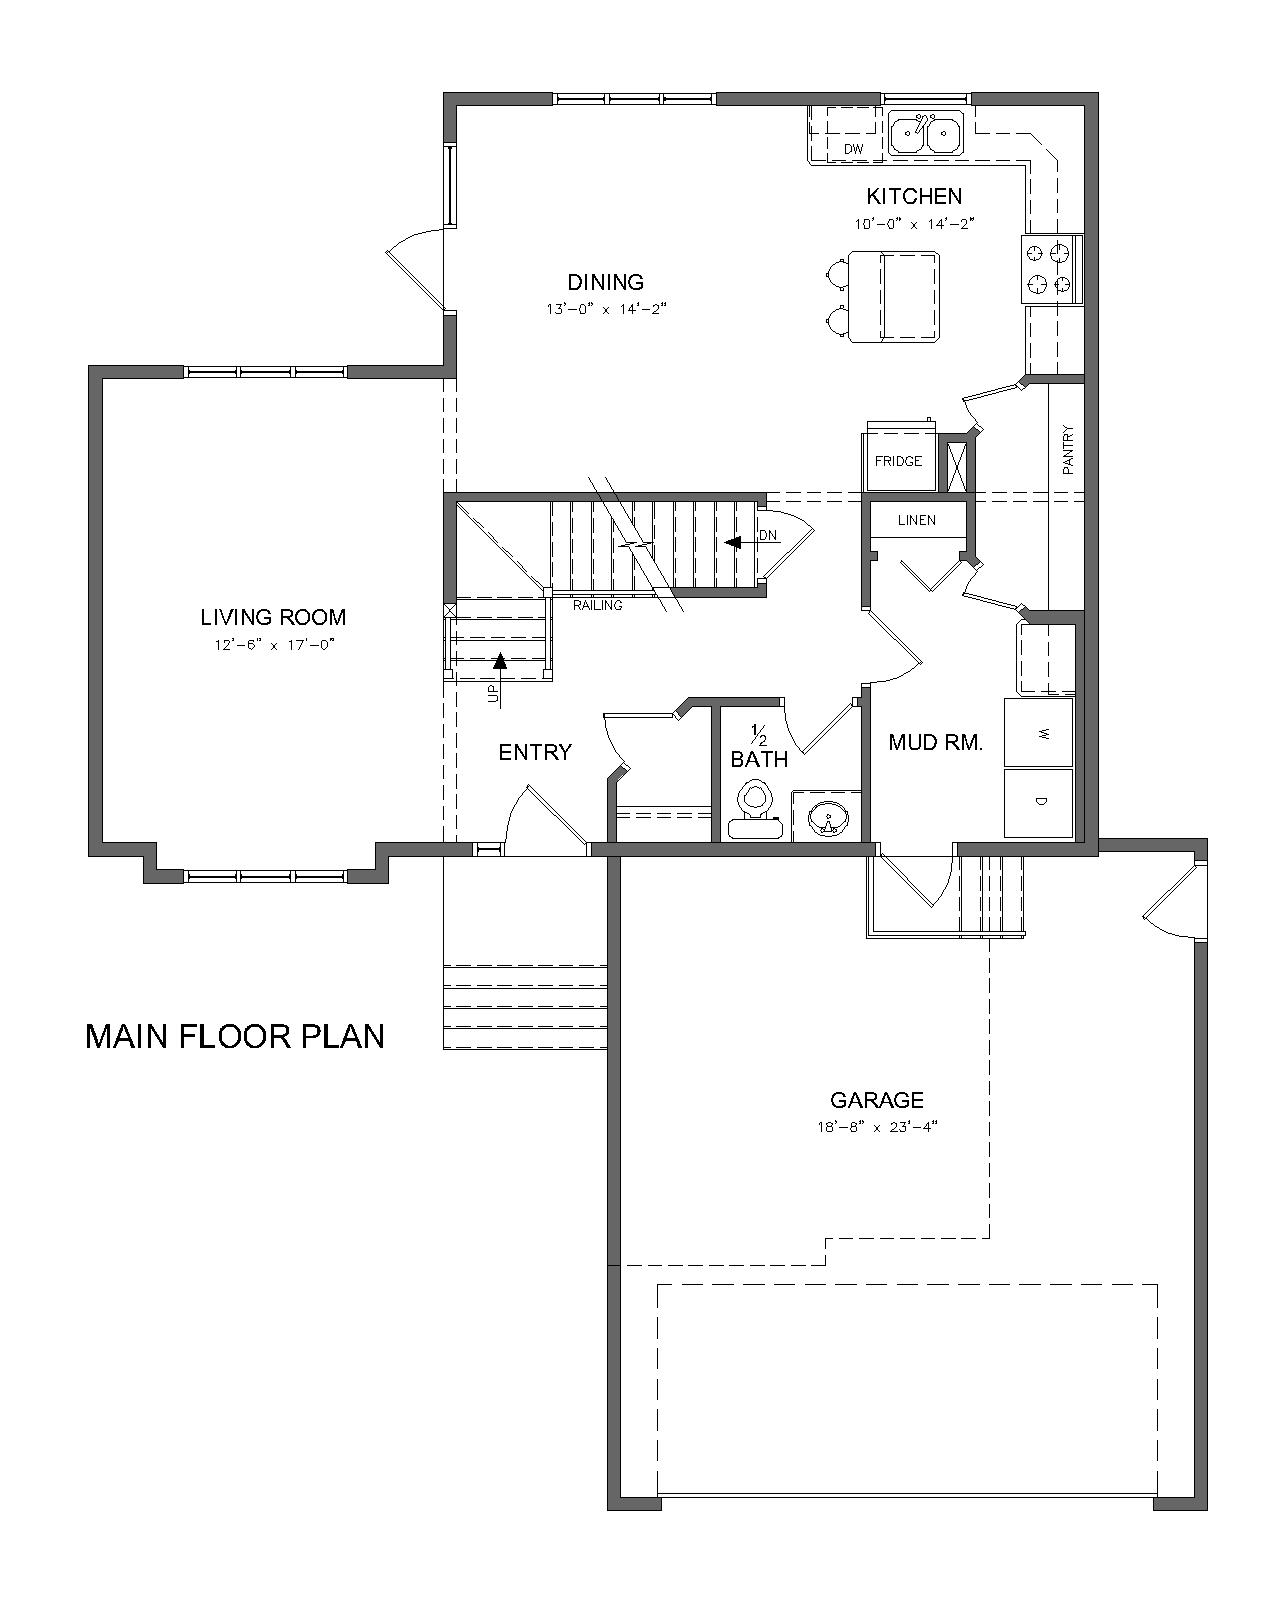 Modified Bi Level House Plans Canada as well Bi Level Home Plans together with New kerala home plan furthermore 100 Free Floor Plan Design furthermore 2012 04 01 archive. on custom bi level house plans